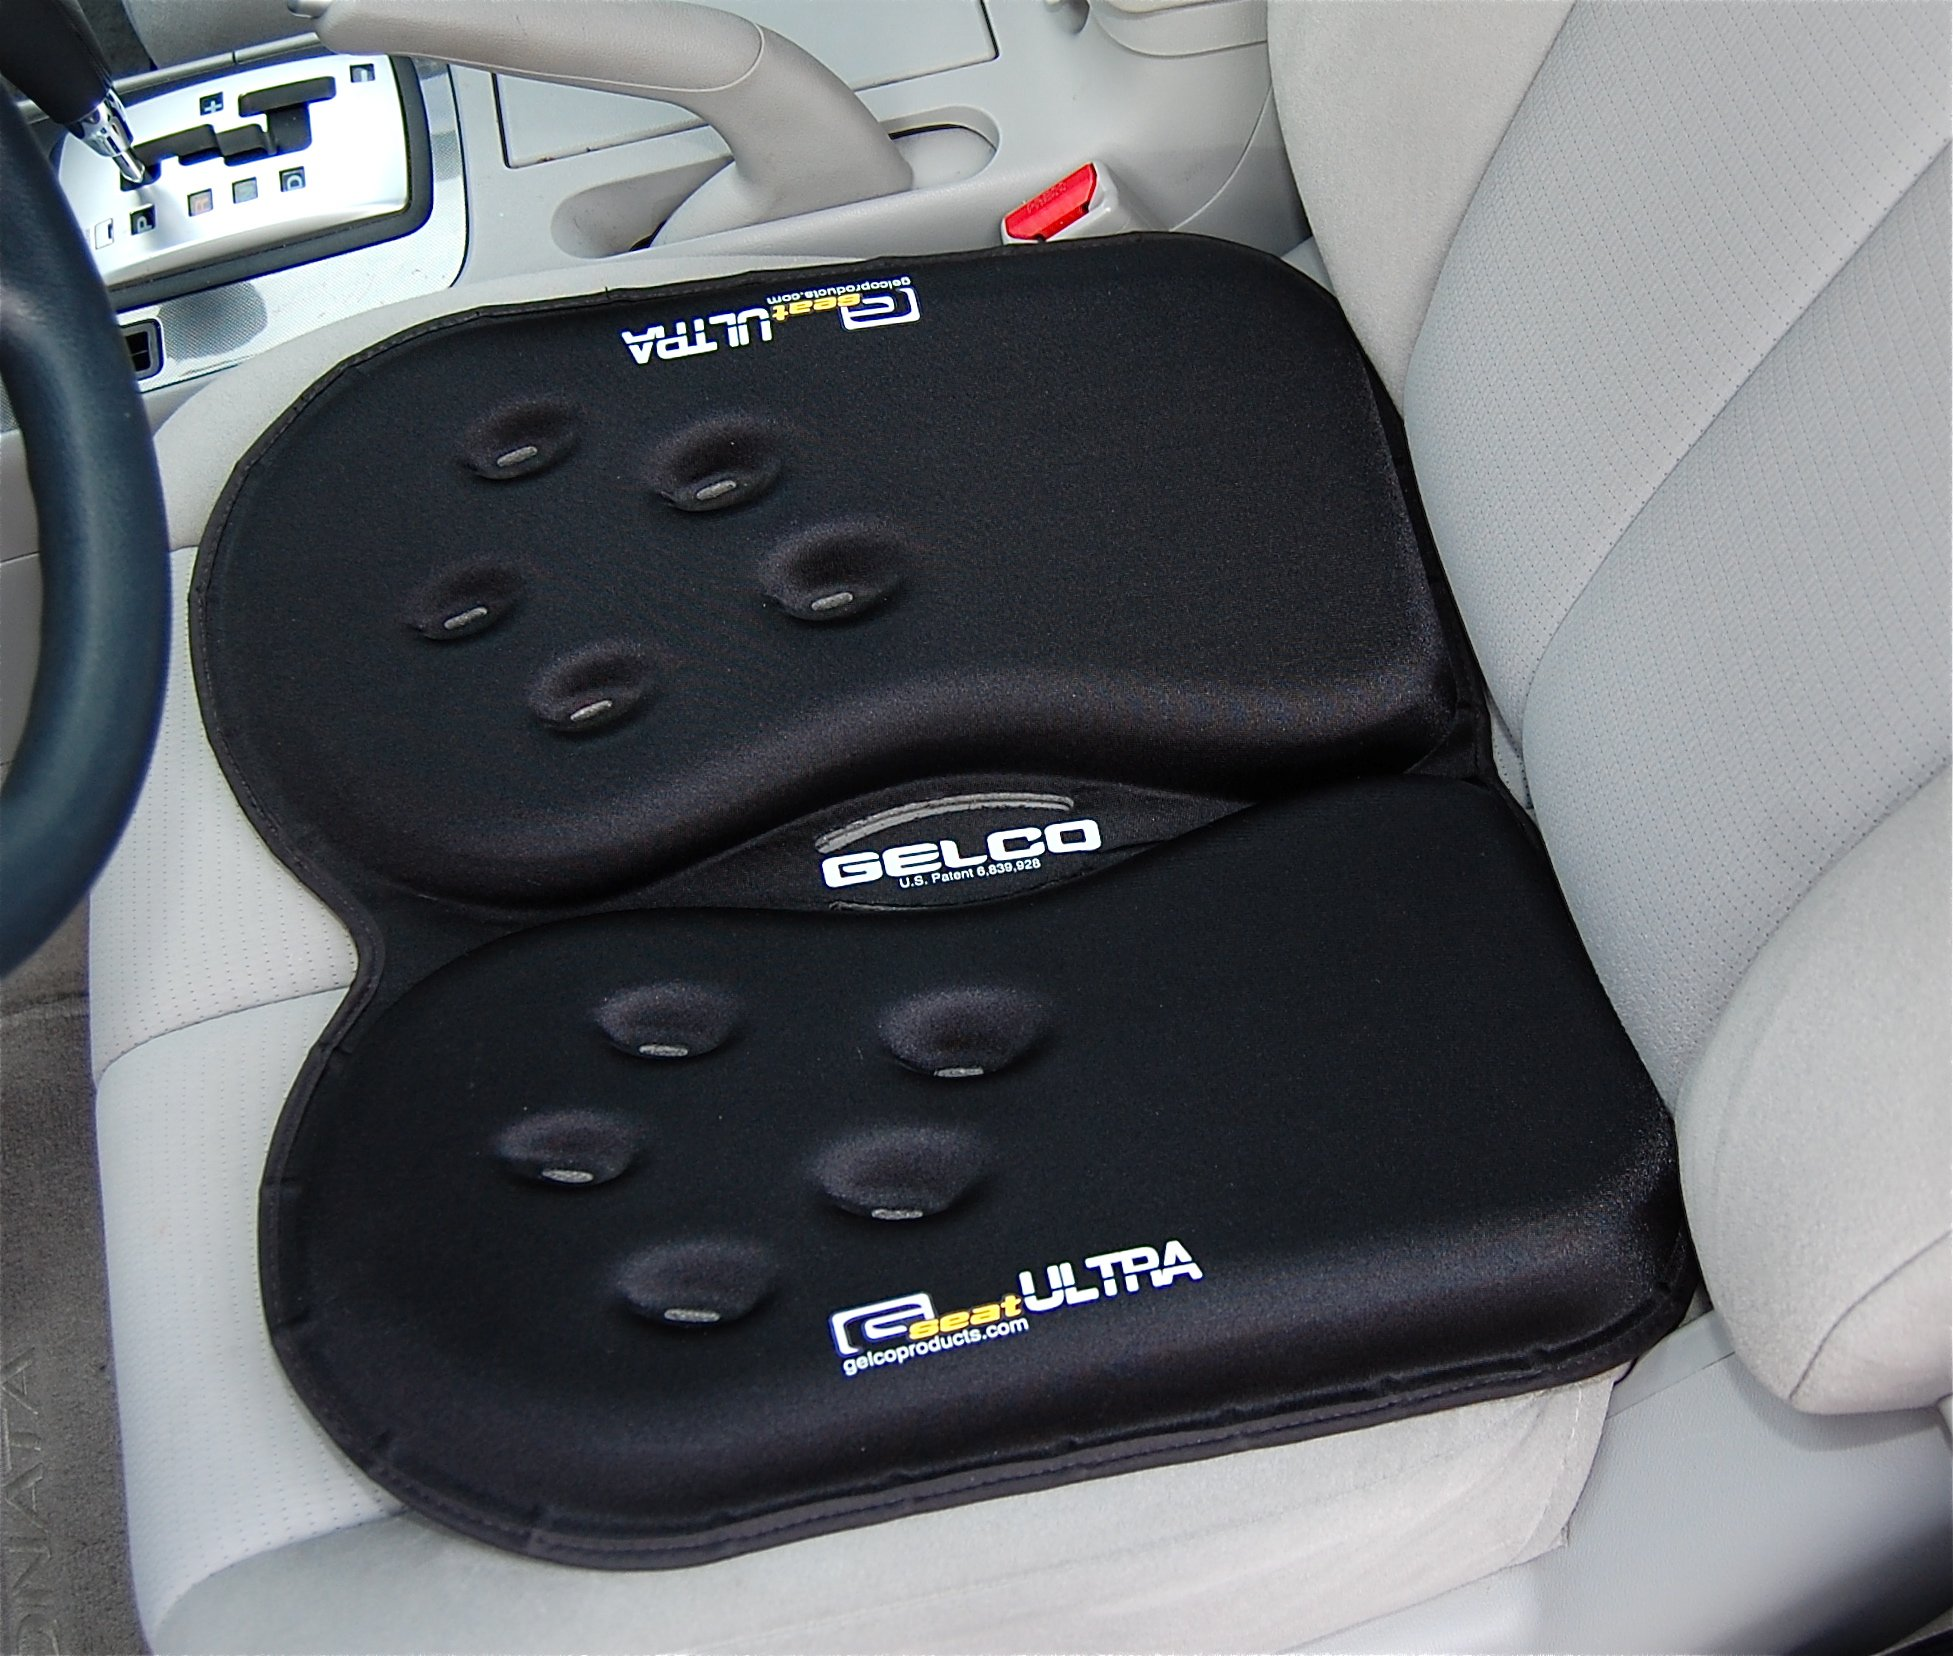 Mobilty GSeat ULTRA Foldable Seat Cushion